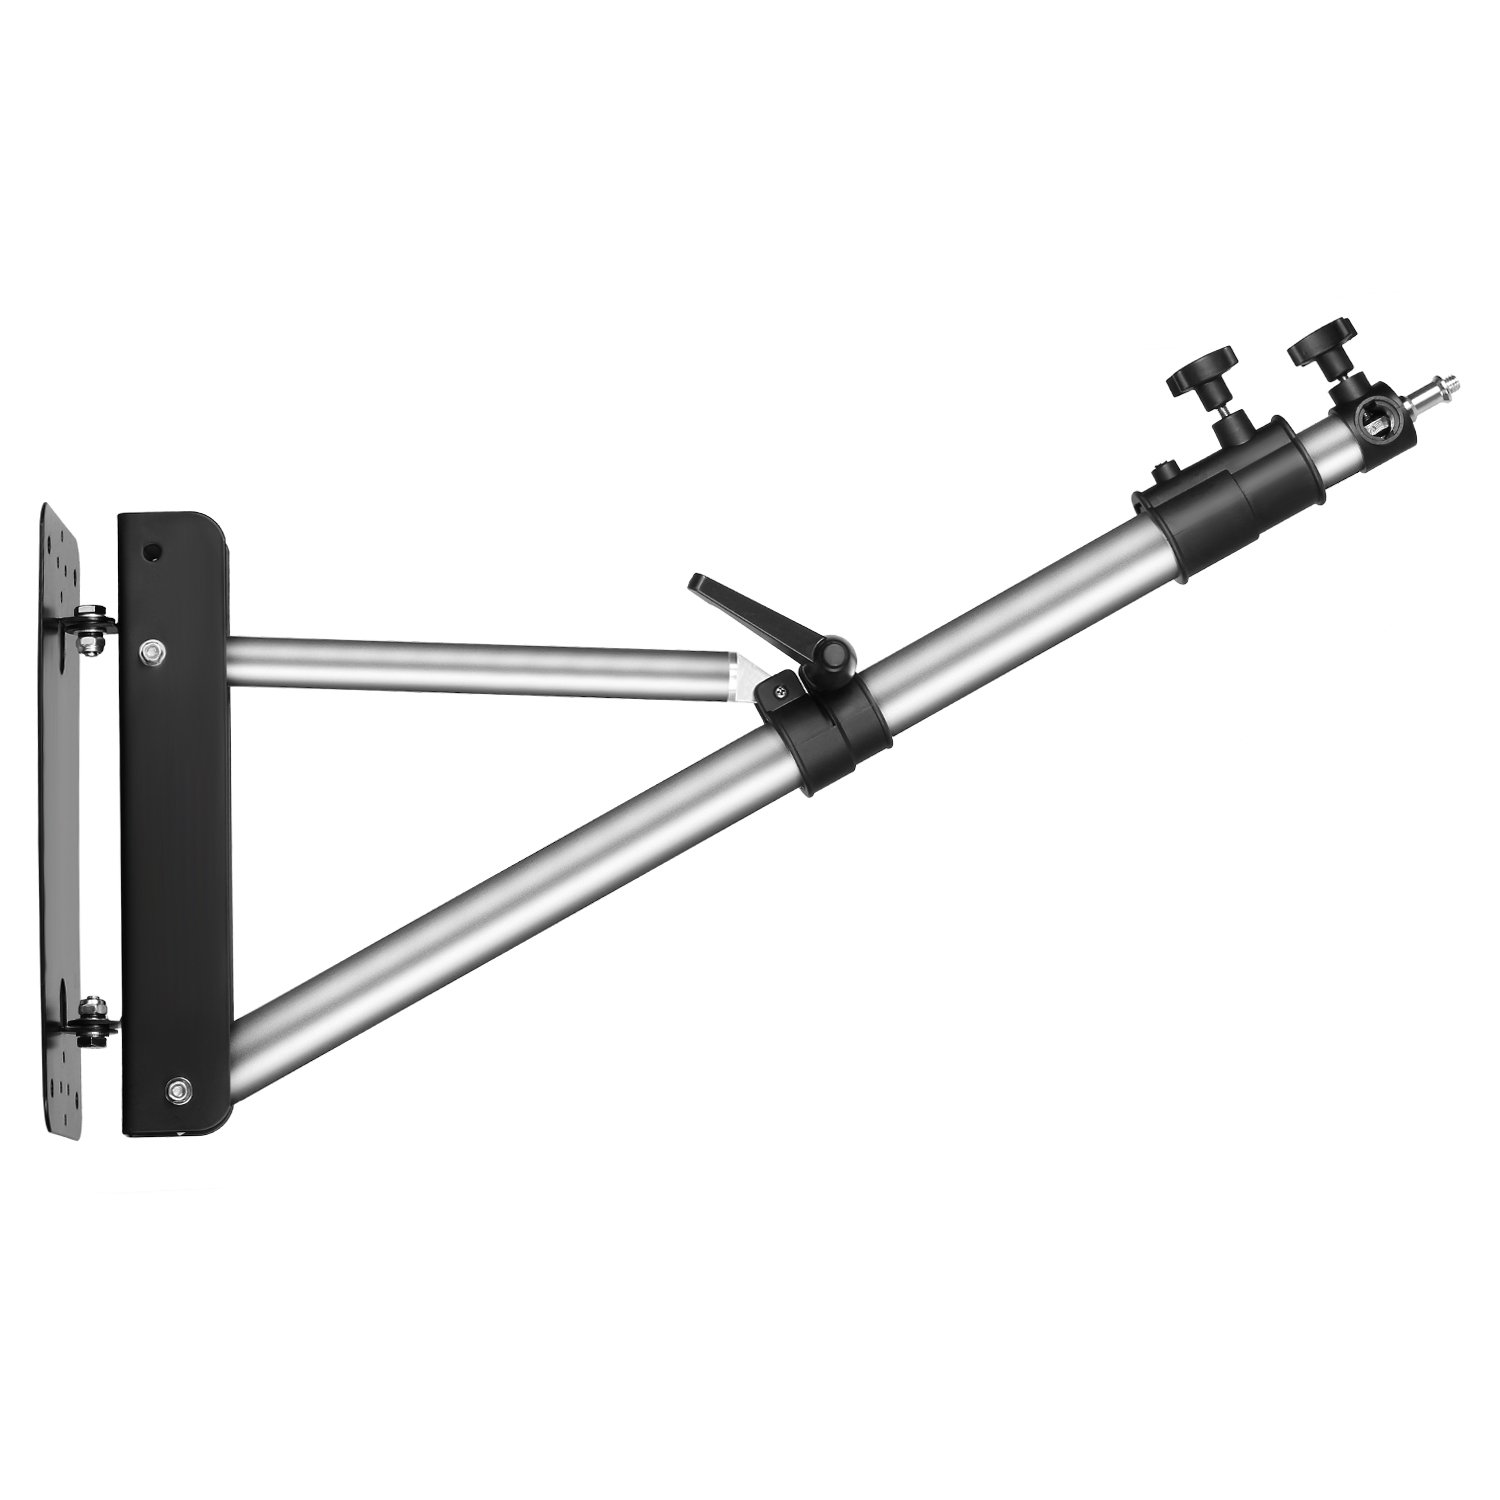 Neewer Wall Mounting Boom Arm with Triangle Base for Photography Studio Video Strobe Light Monolight Softbox Umbrella Reflector, 180 Degree Rotation, Max Length 66.5 inches/169centimeters (Silver)